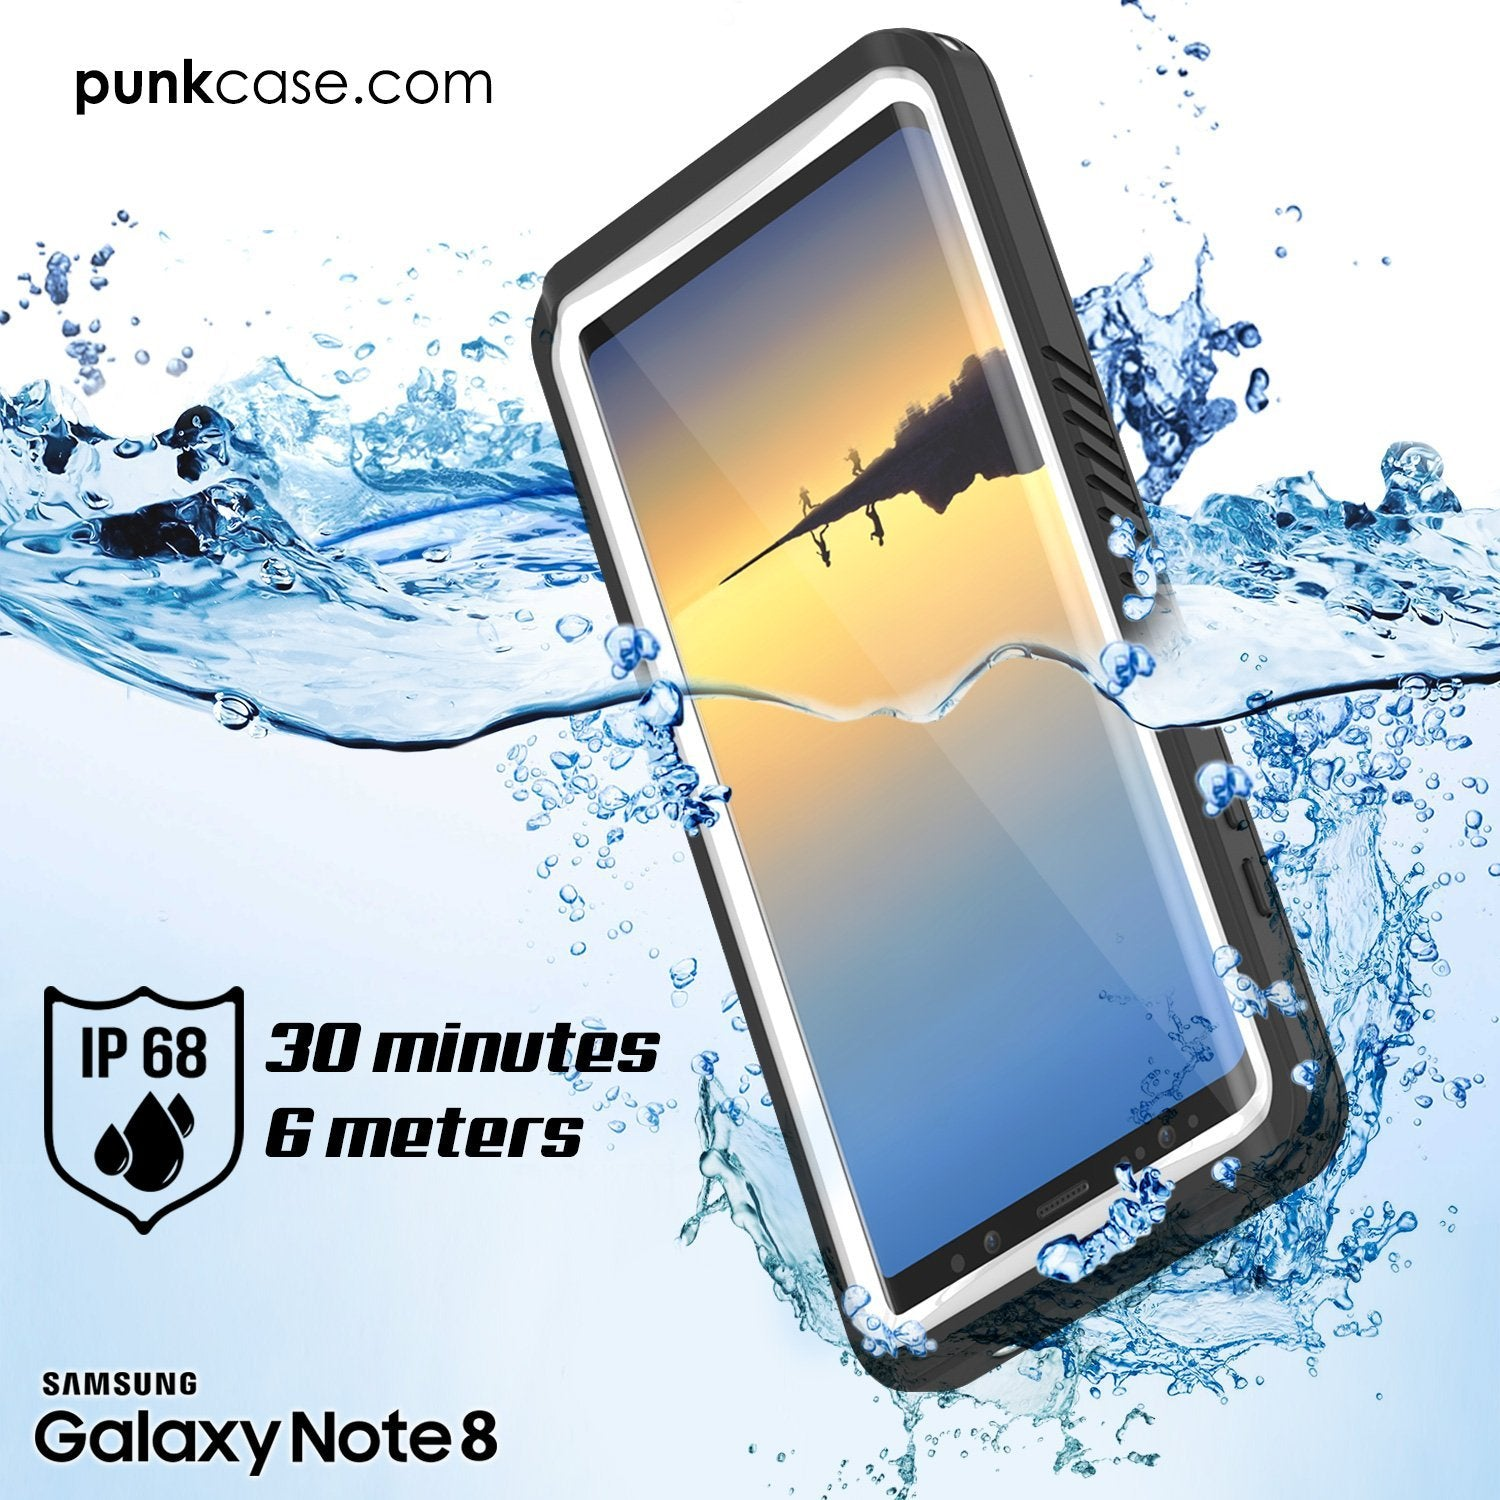 Galaxy Note 8 Case, Punkcase [Extreme Series] [Slim Fit] [IP68 Certified] [Shockproof] Armor Cover W/ Built In Screen Protector [White] - PunkCase NZ